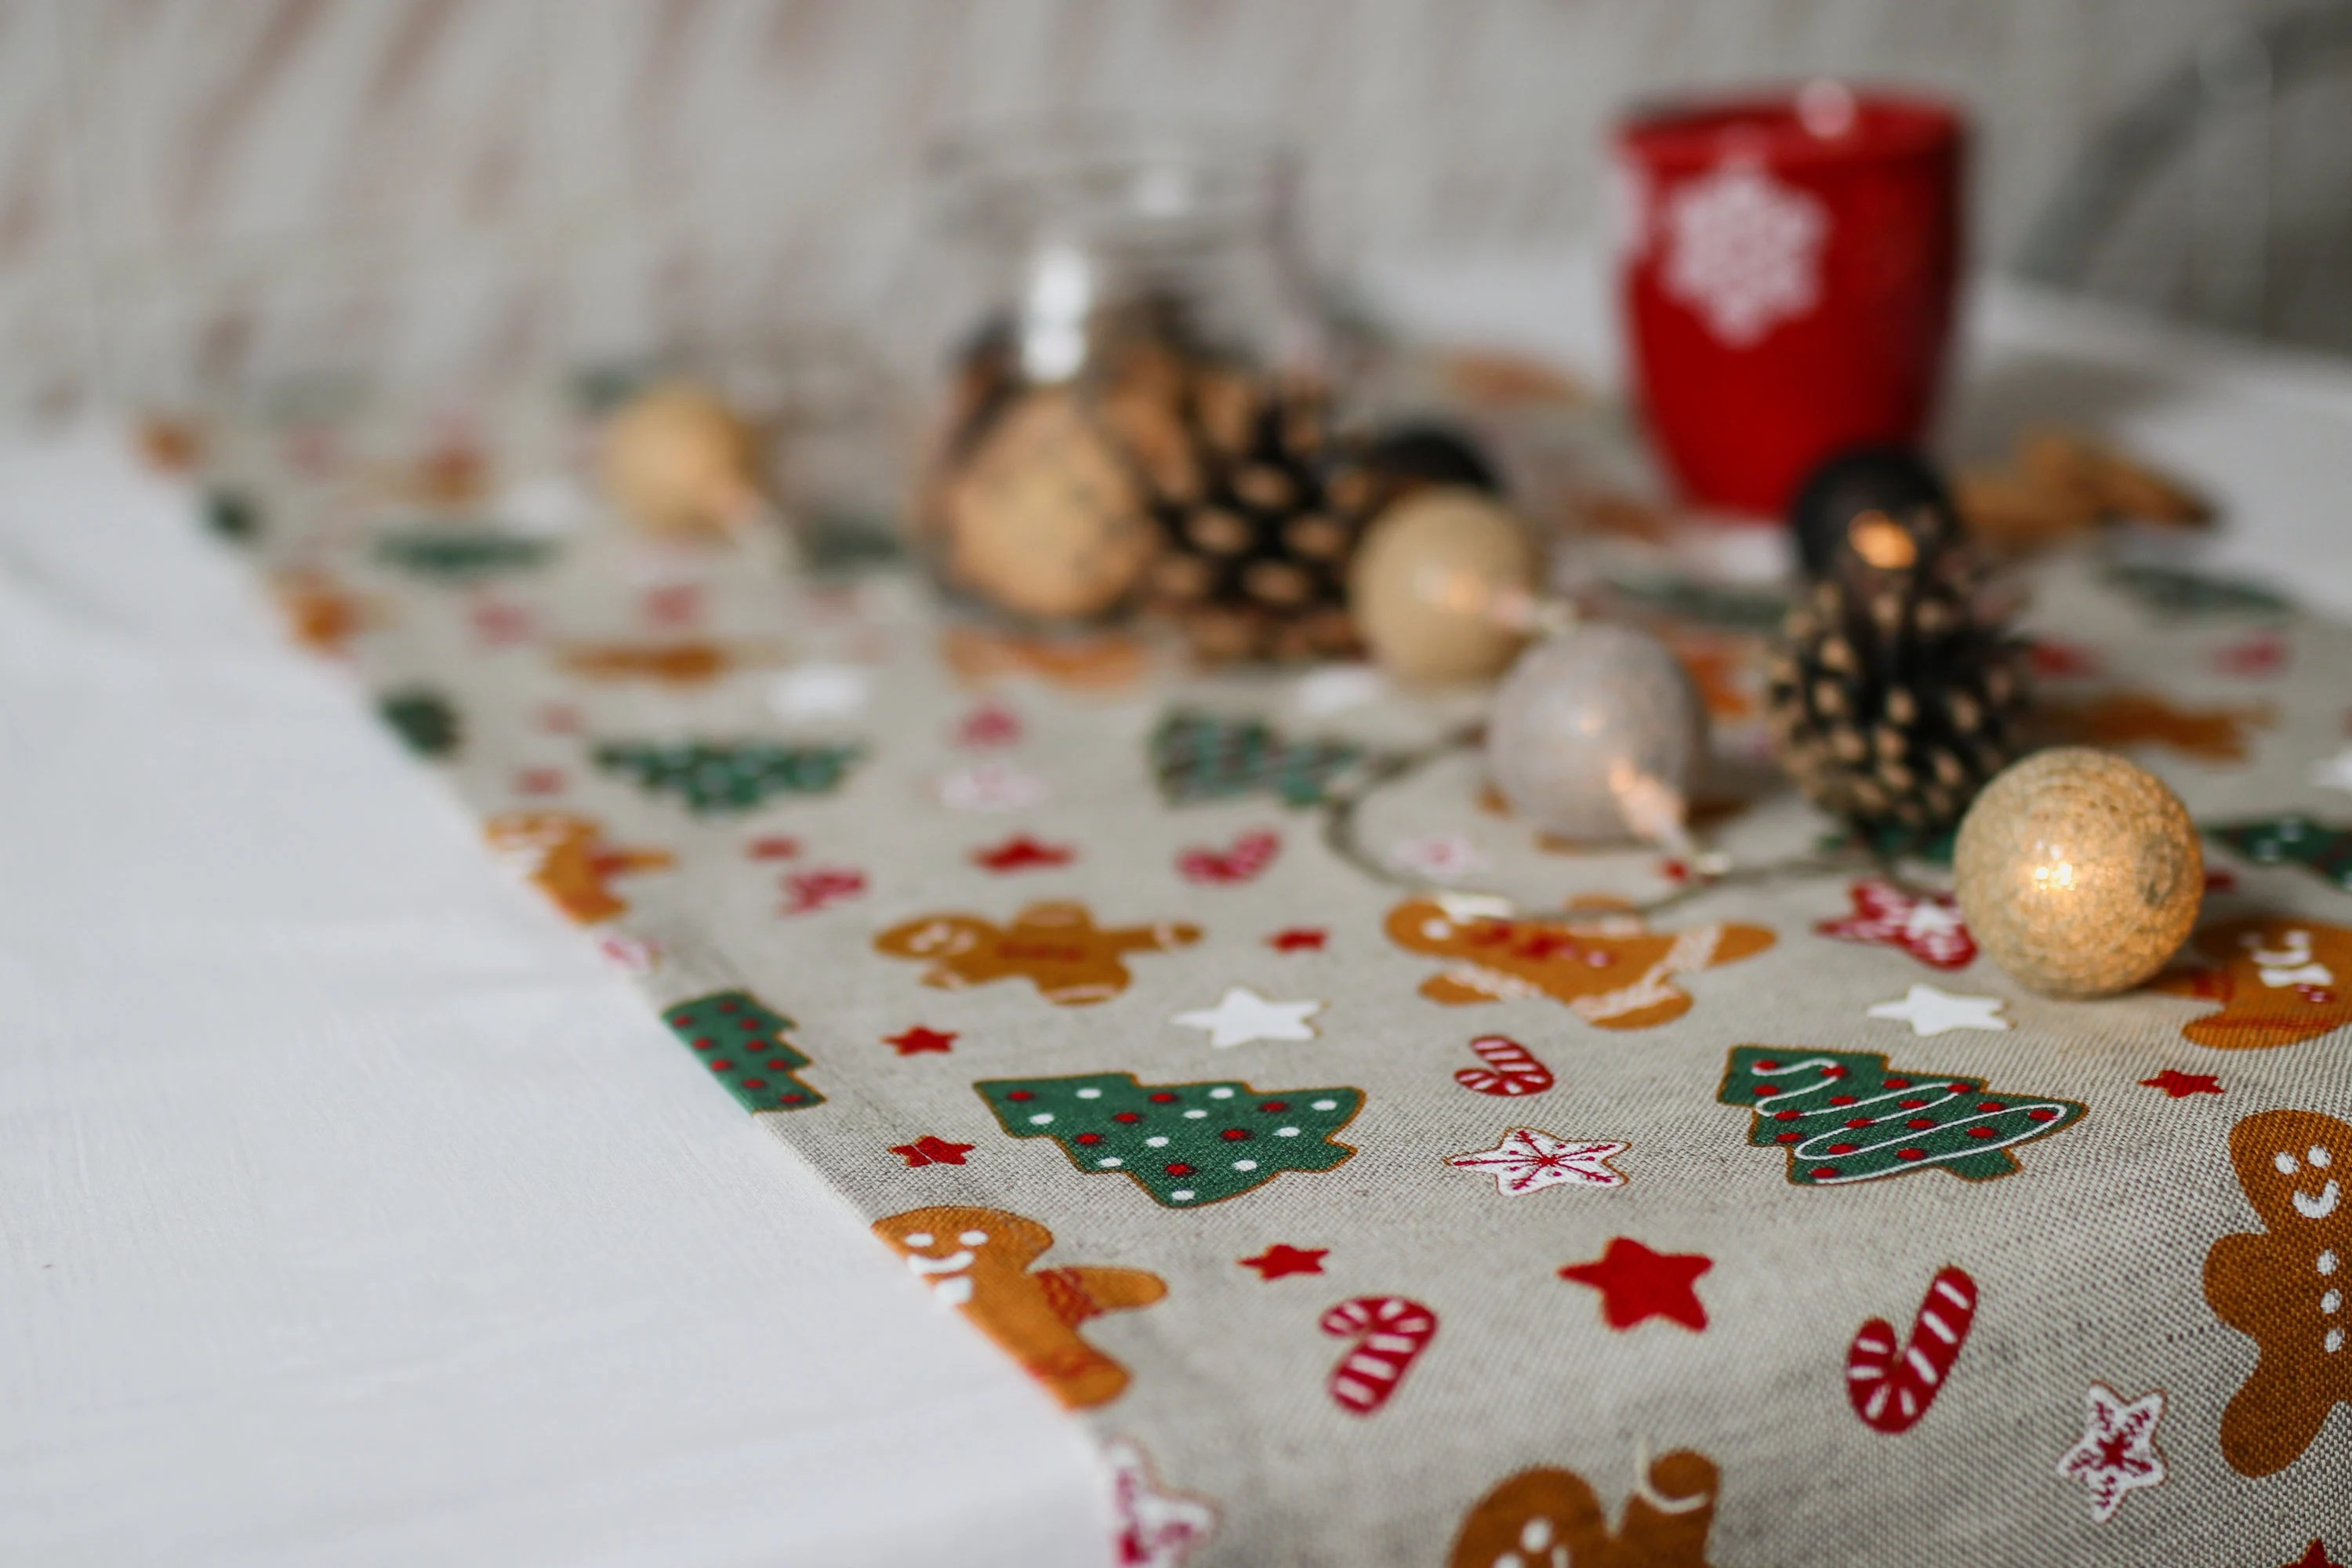 Christmas Tablecloths Australia Xmas Linen Table Runner For Christmas Table Decoration Or Christmas Gift Christmas Linen Table Cloth Rustic Linen Christmas Table Runners